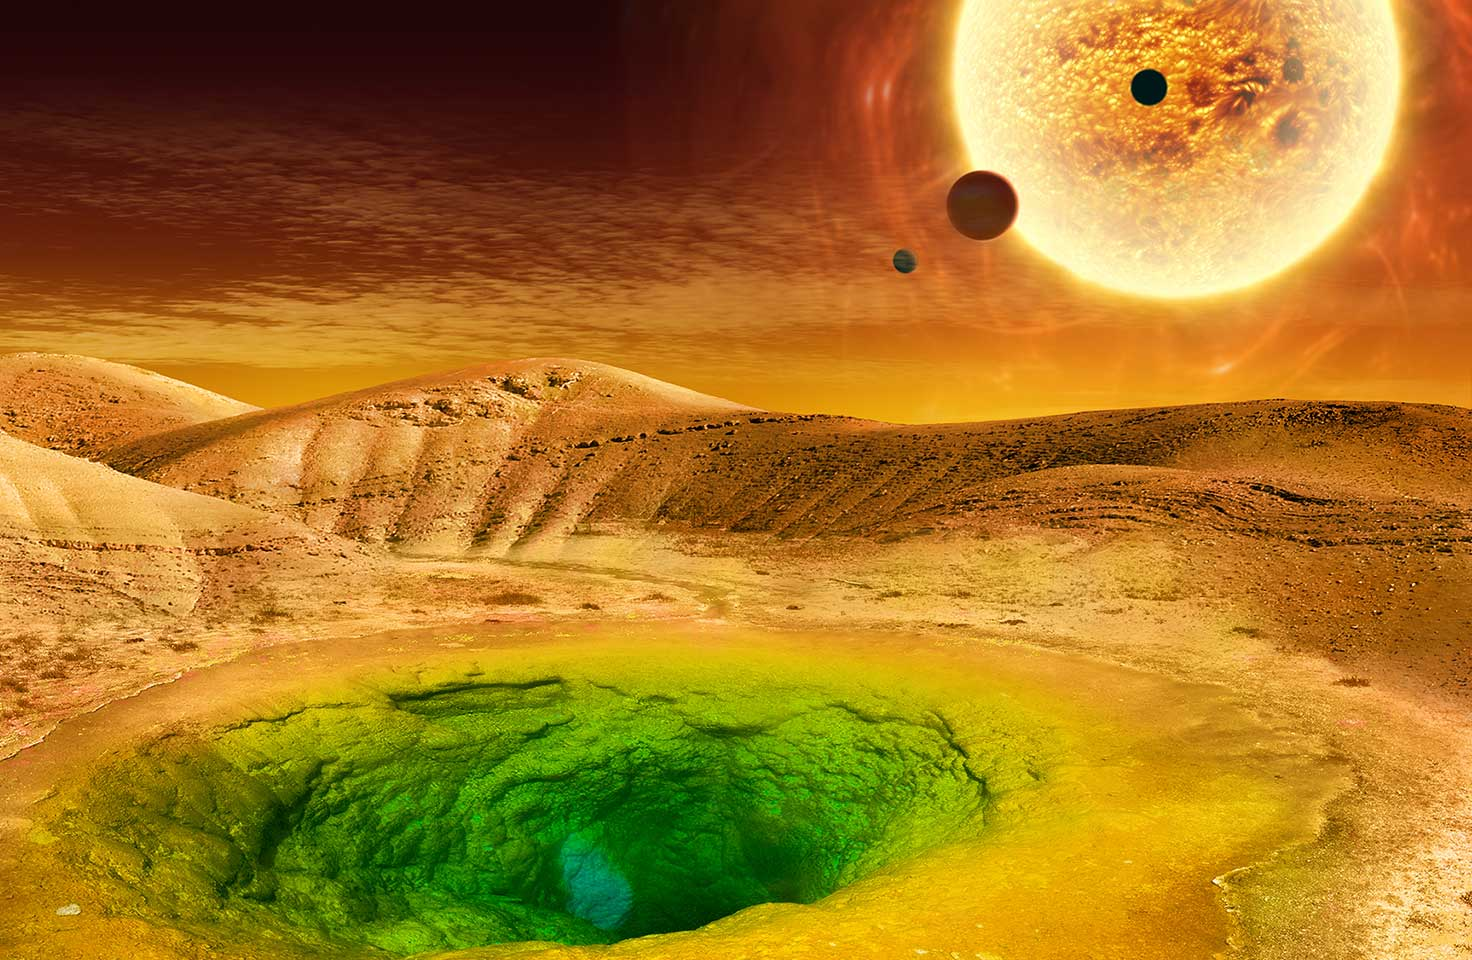 Artist conception of an exoplanet surface